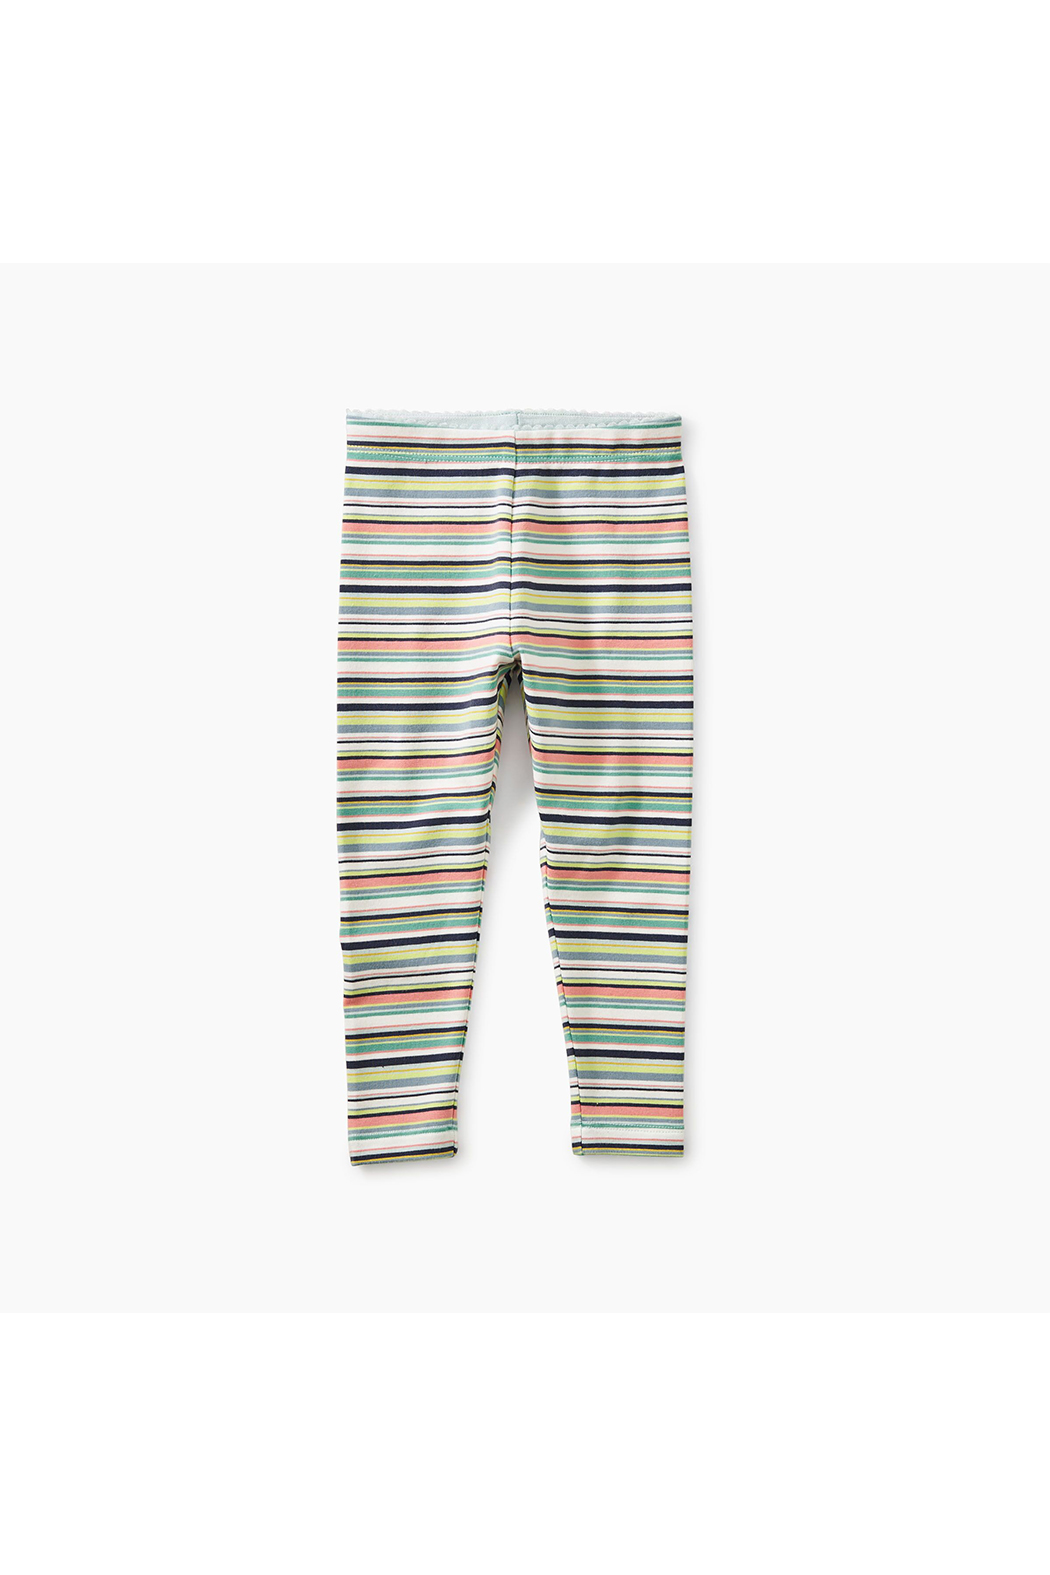 Tea Collection Mulitstripe  Baby Leggings - Front Full Image